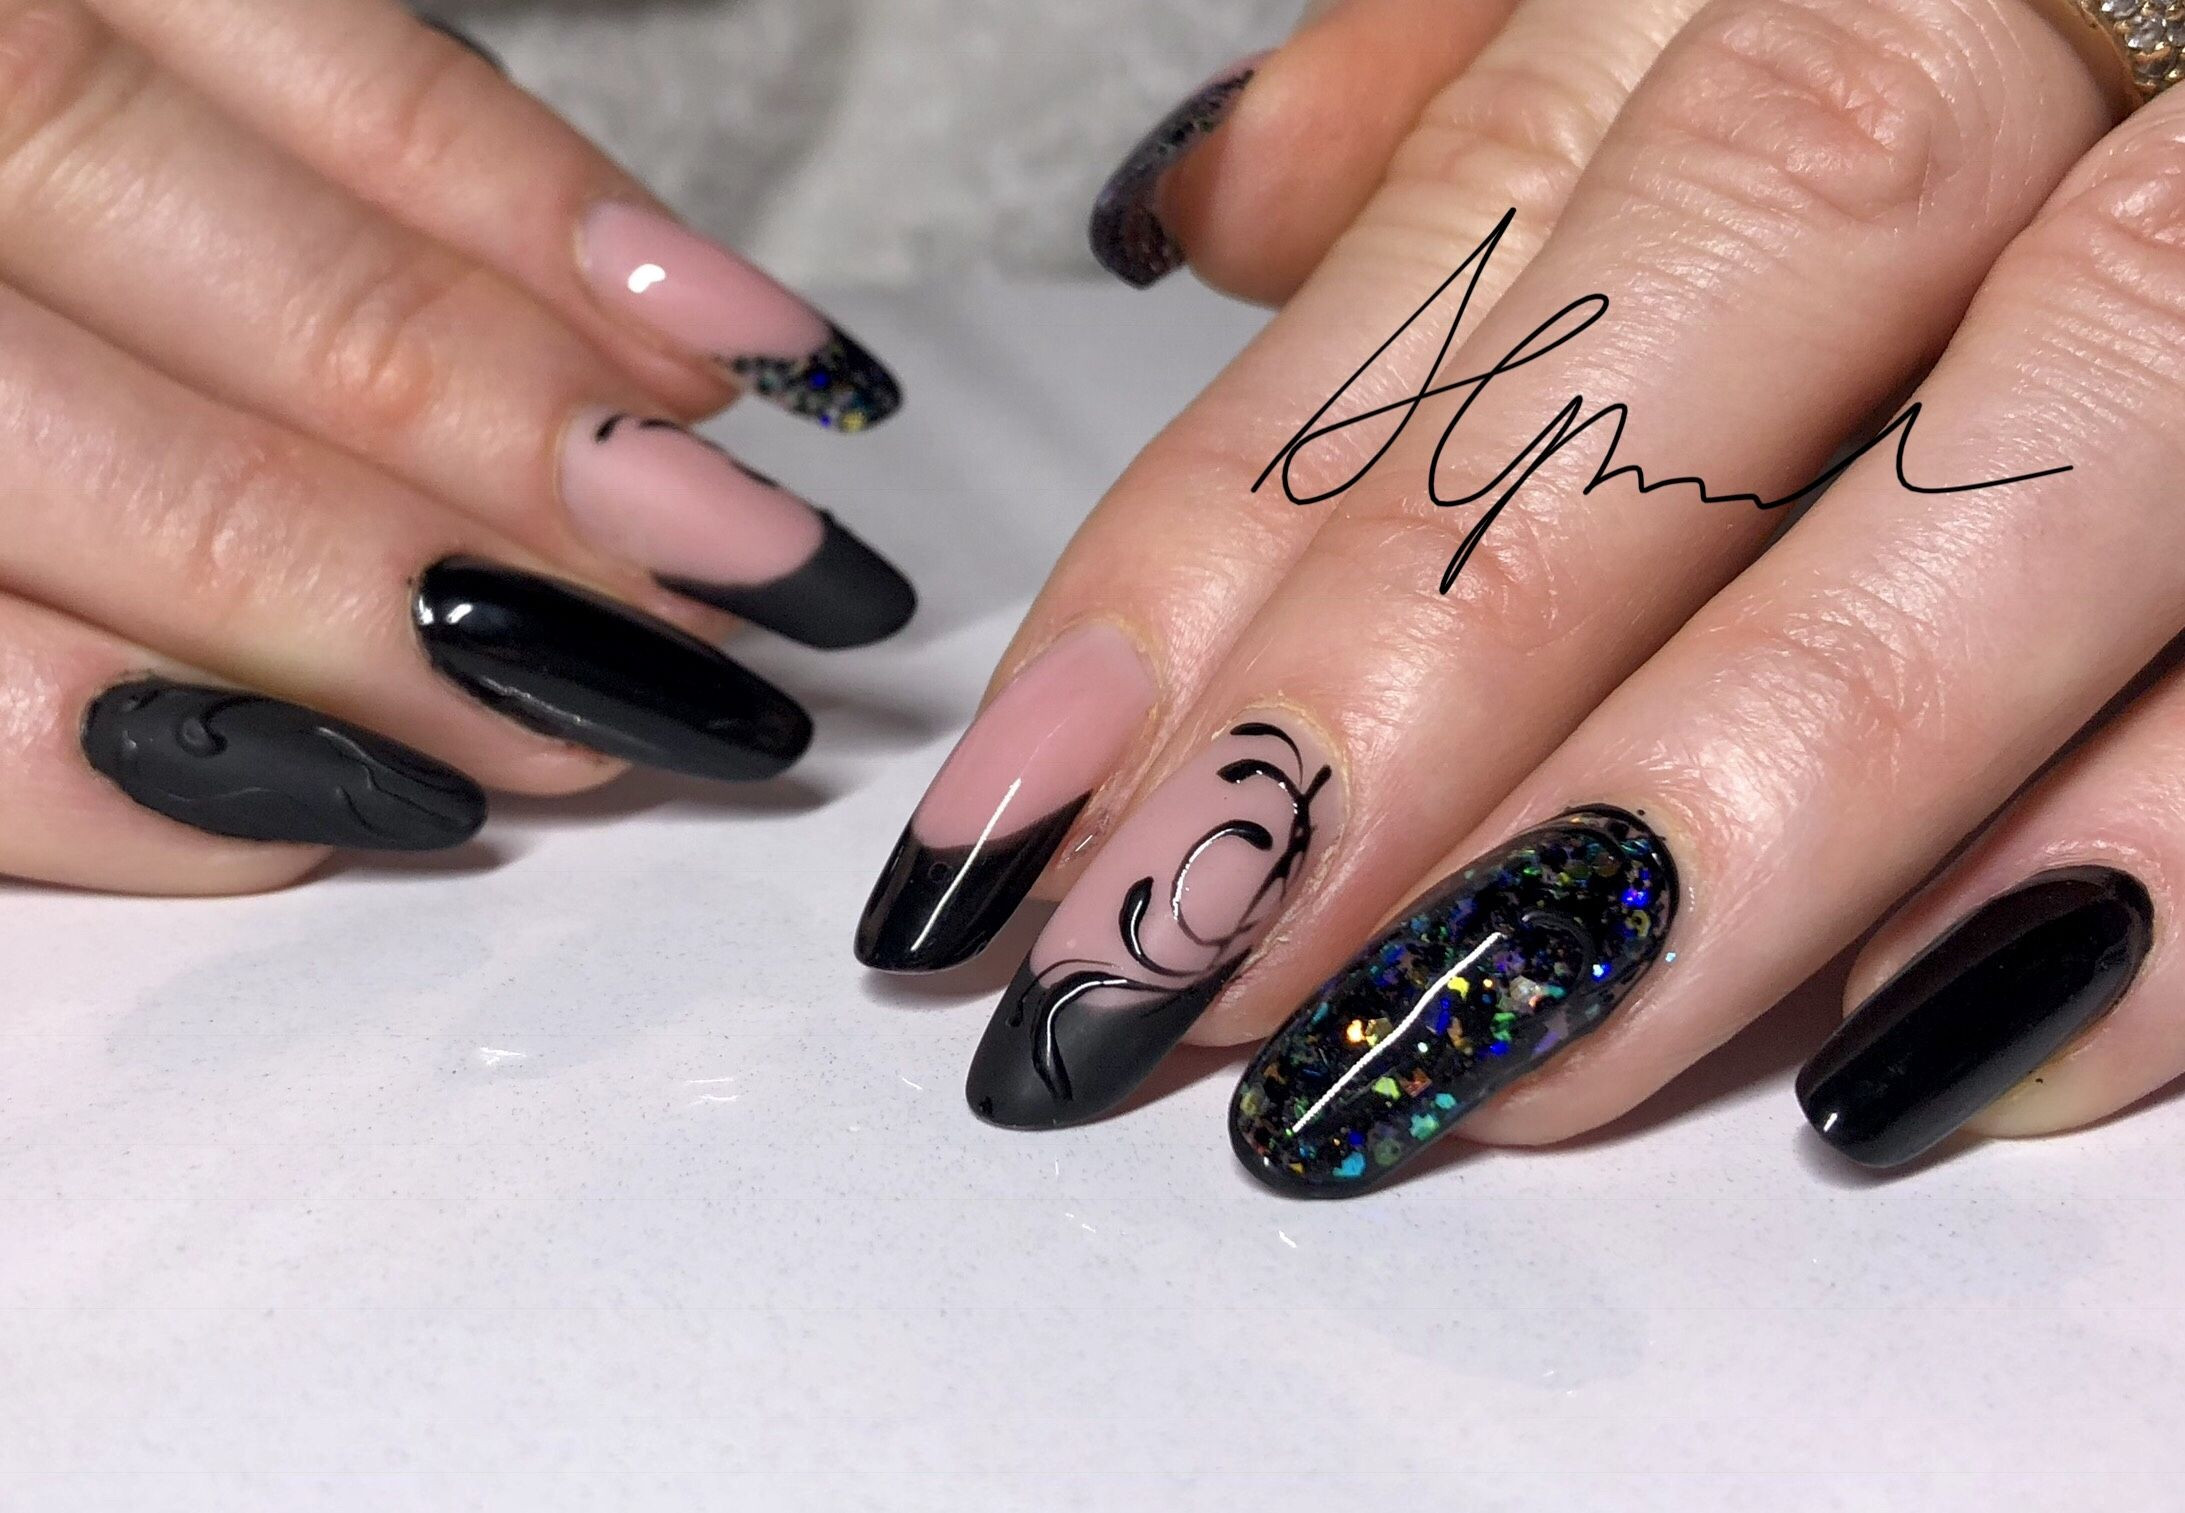 Nageldesign Matt Glitzer  Nailart schwarz Modern nageldesign Nägel matt Nägel